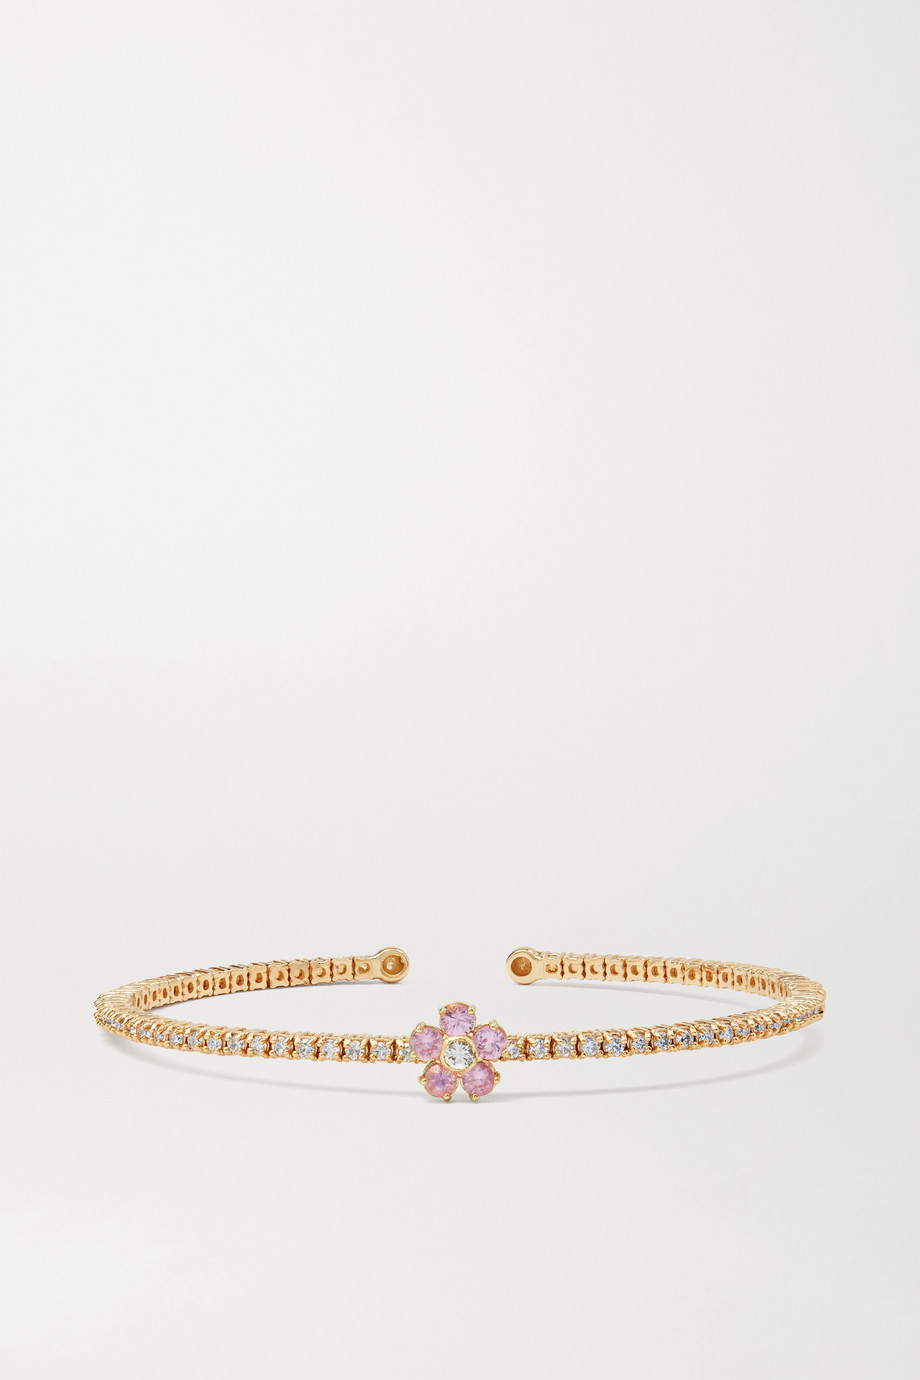 Jennifer Meyer Bracelet en or 18 carats, diamants et saphirs Flower